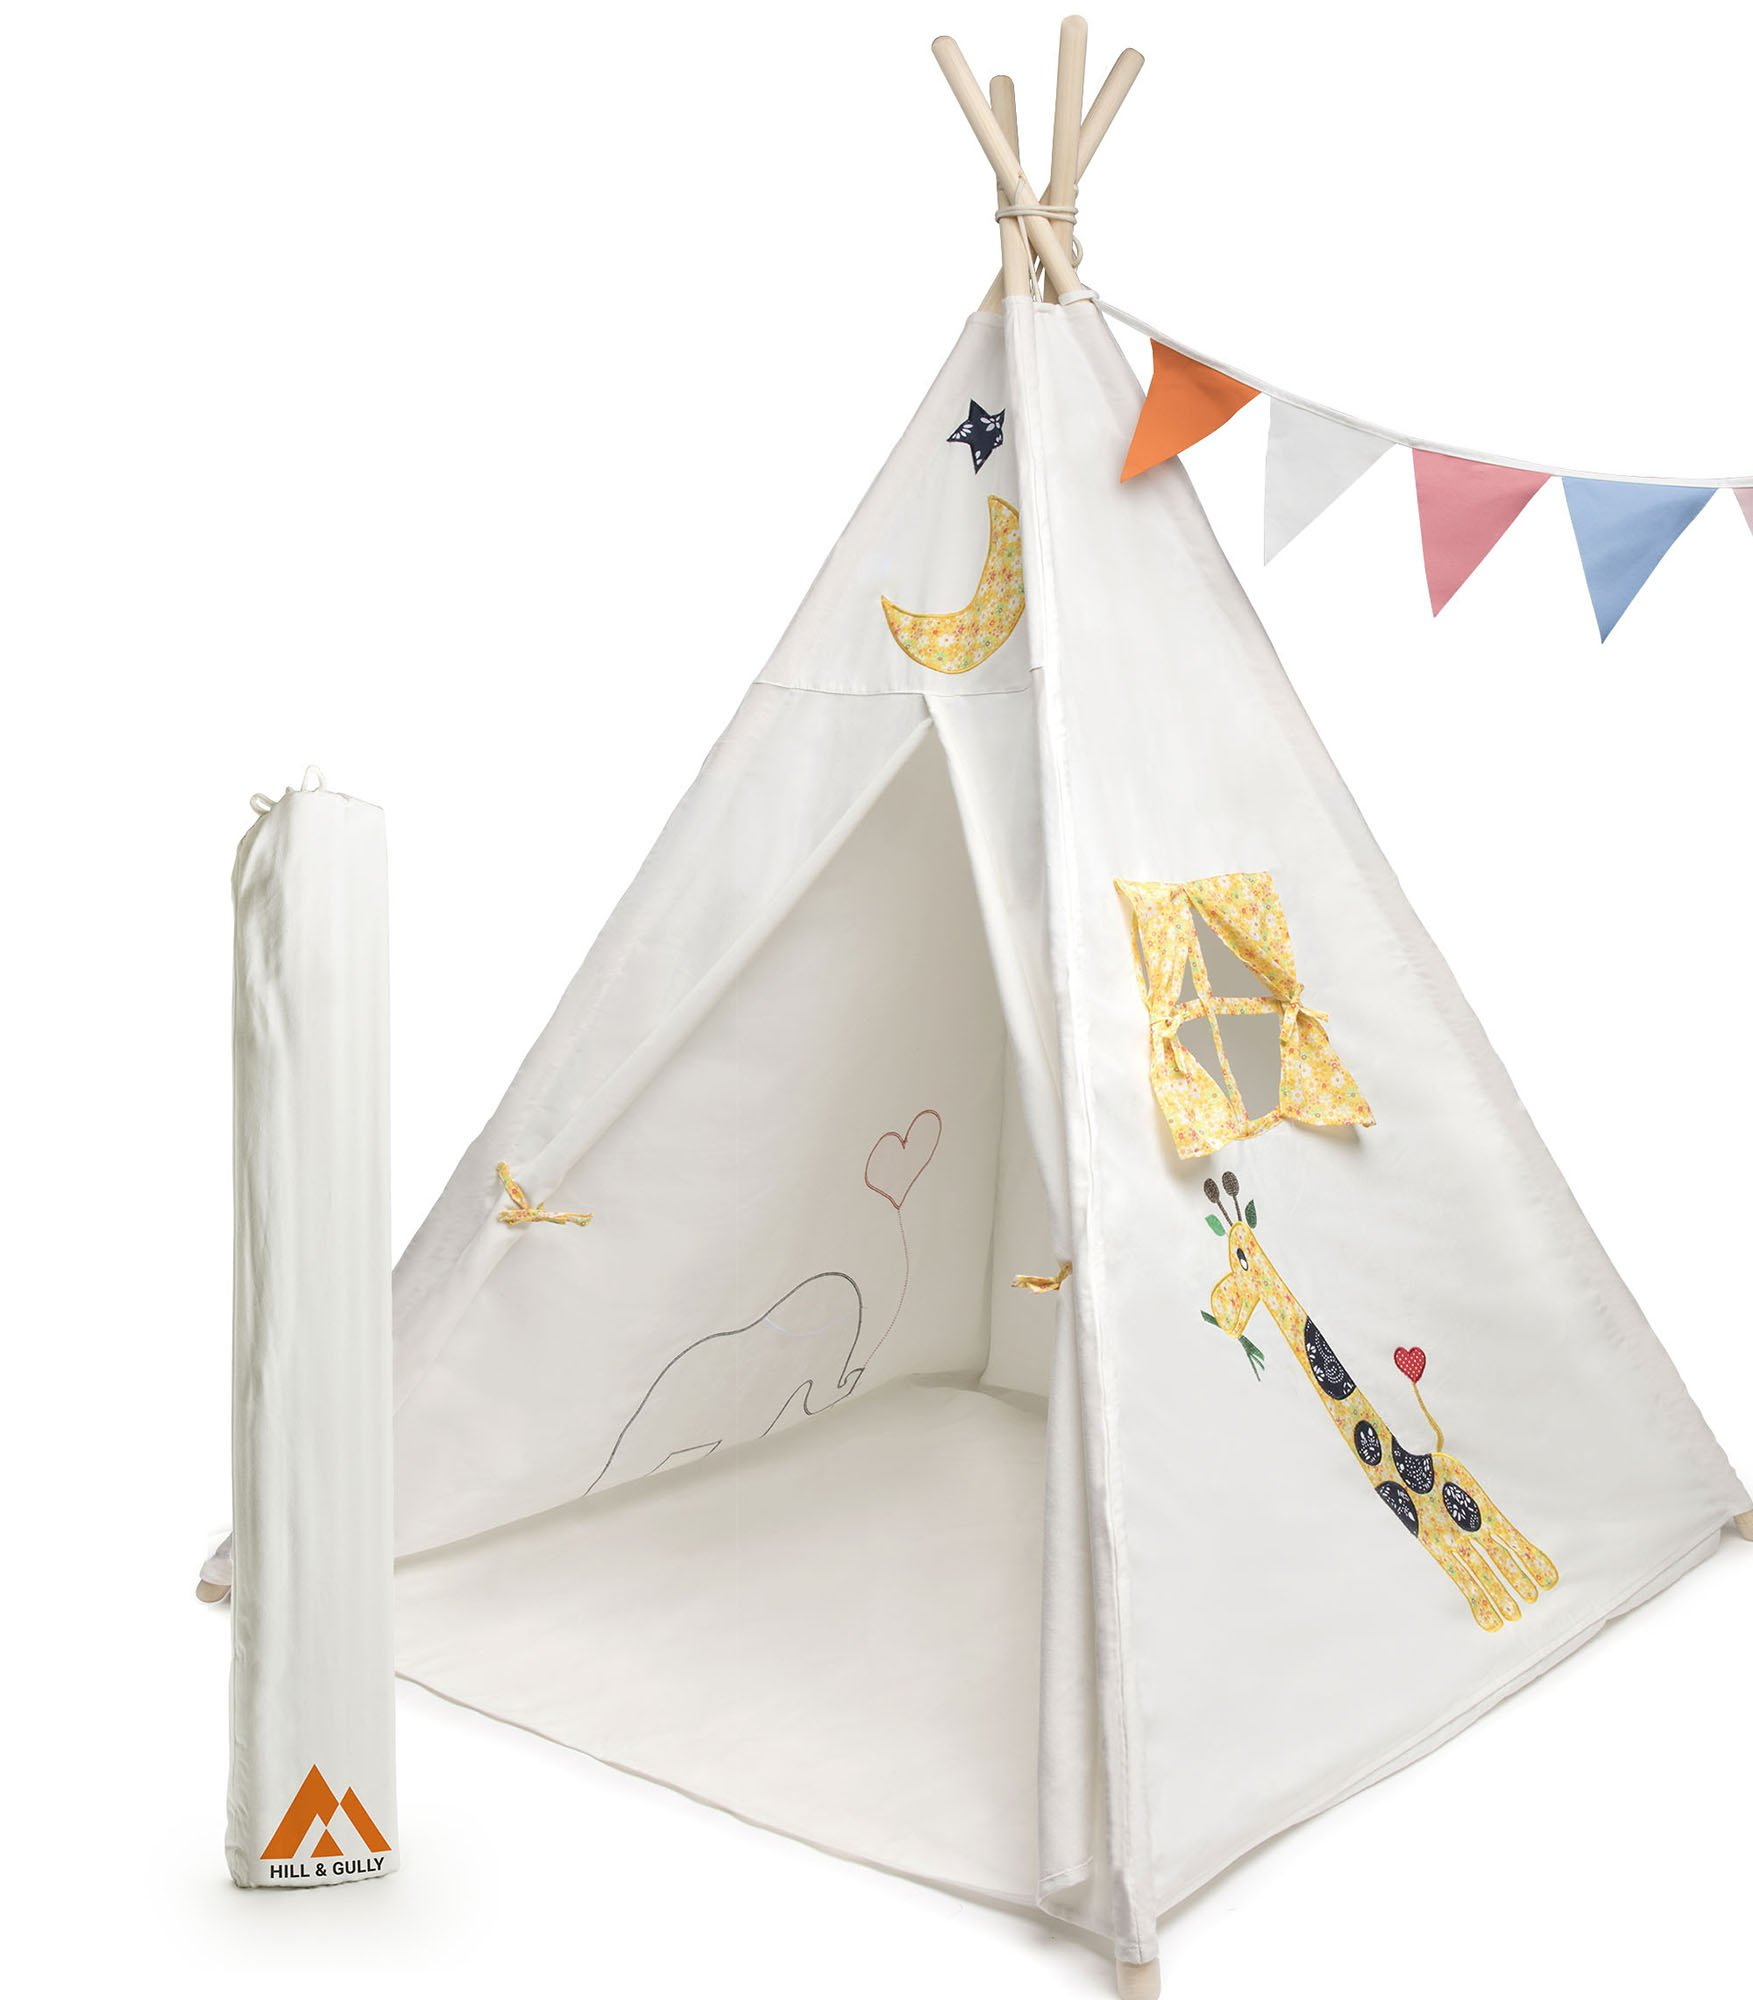 Hill and Gully Teepee Tent for Kids Cotton Canvas with Mat Flags and Carry Case Teepee Tent for Boys, Girls, Baby, Toddler, Children, Kid, Indoor and Outdoor for Camping, Reading, Play and Nursery